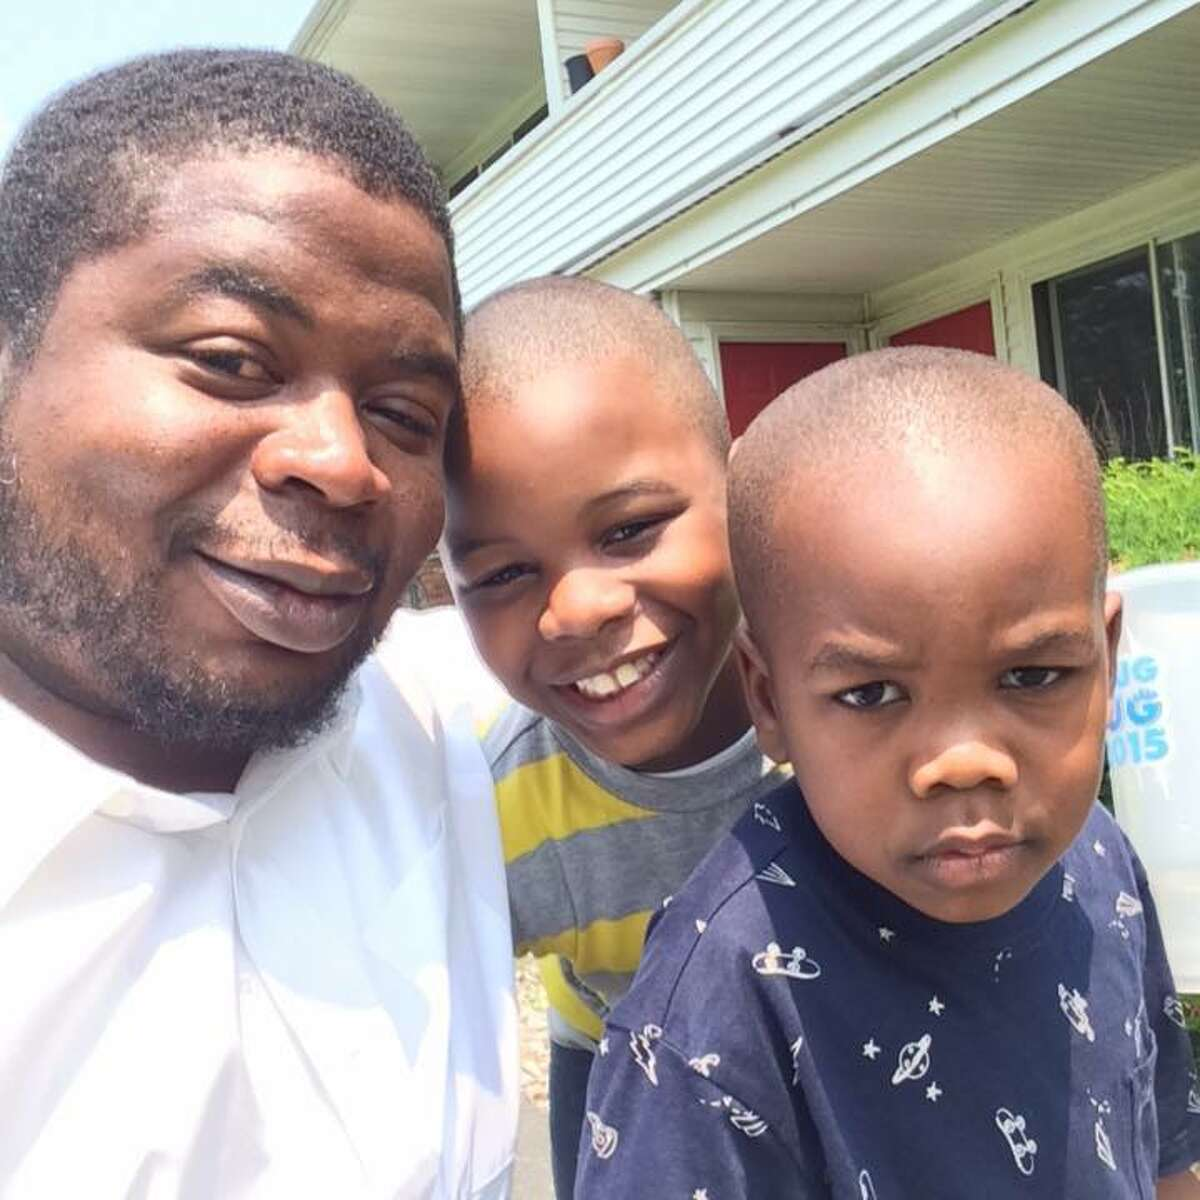 Edson Thevenin, 37, at left, with his two sons. (Facebook)